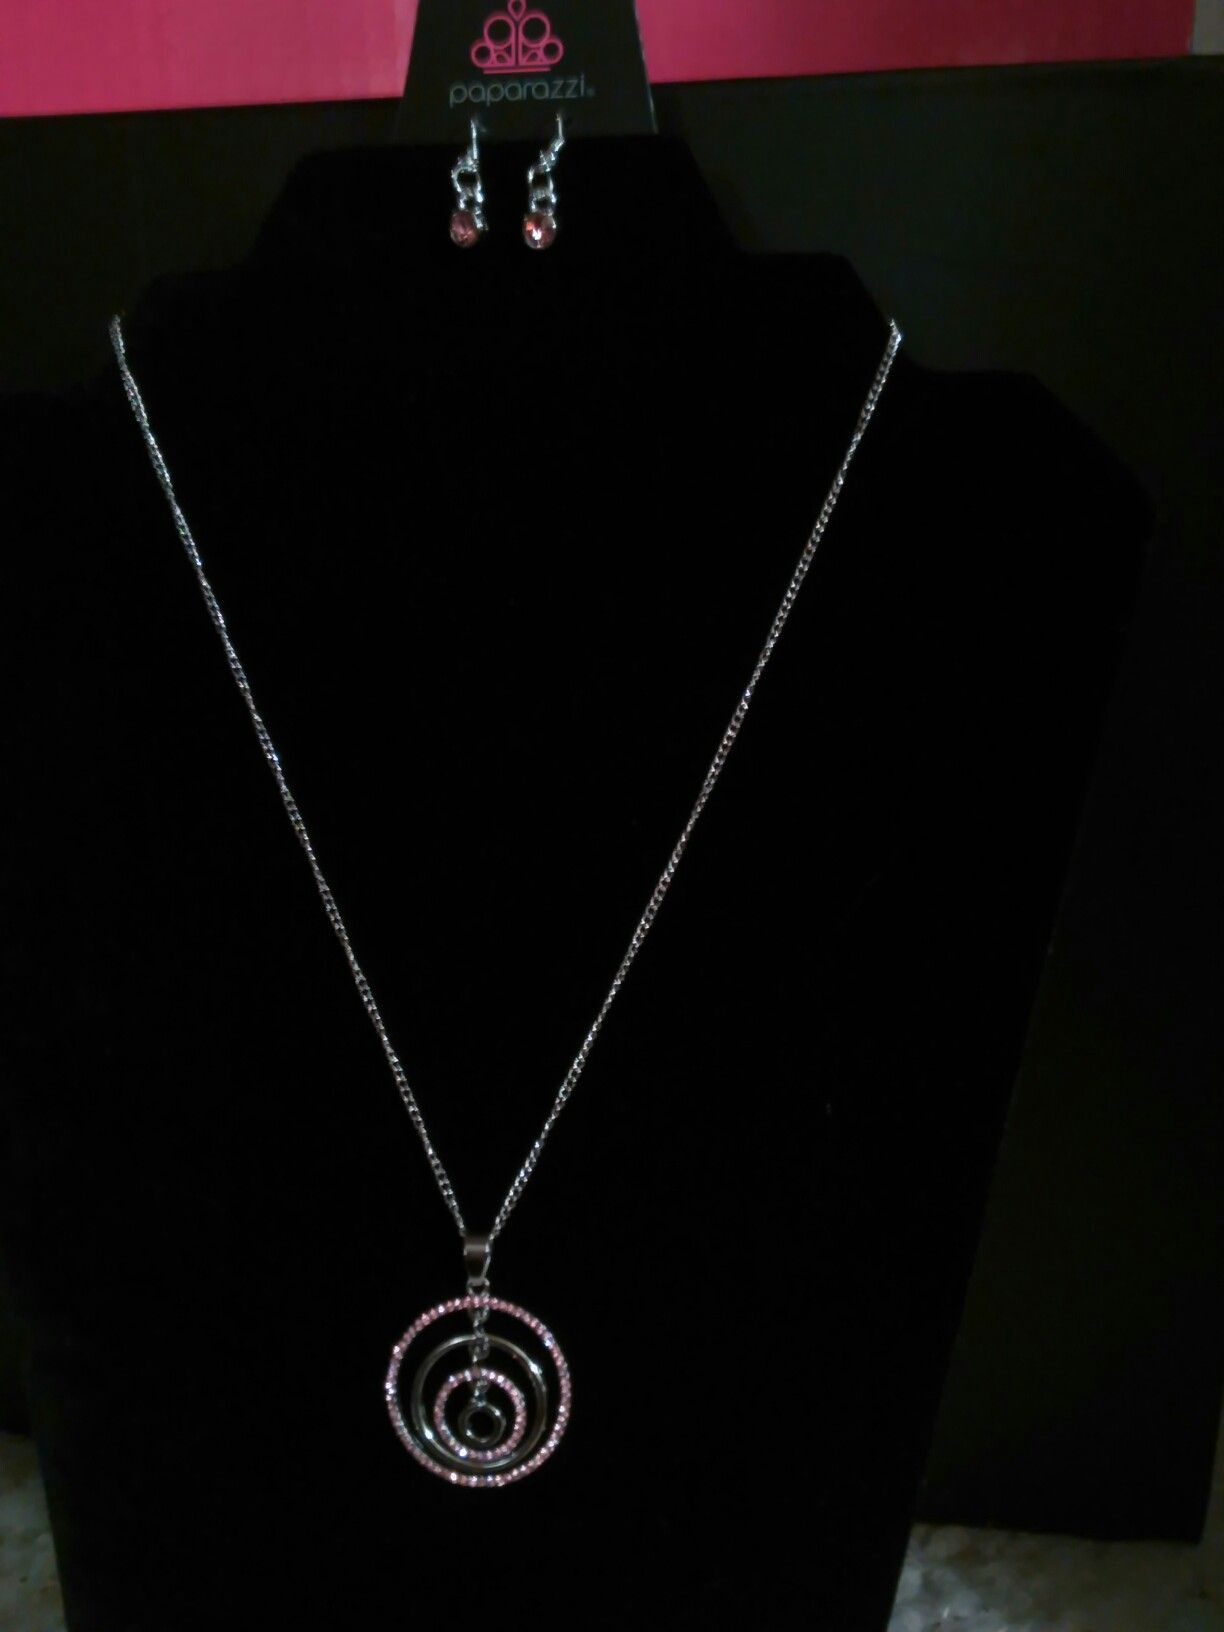 Upper East Side Pink Rhinestone Circular Pendant Necklace | My Pertaining To 2020 Sparkling Ice Cube Circle Pendant Necklaces (View 8 of 25)